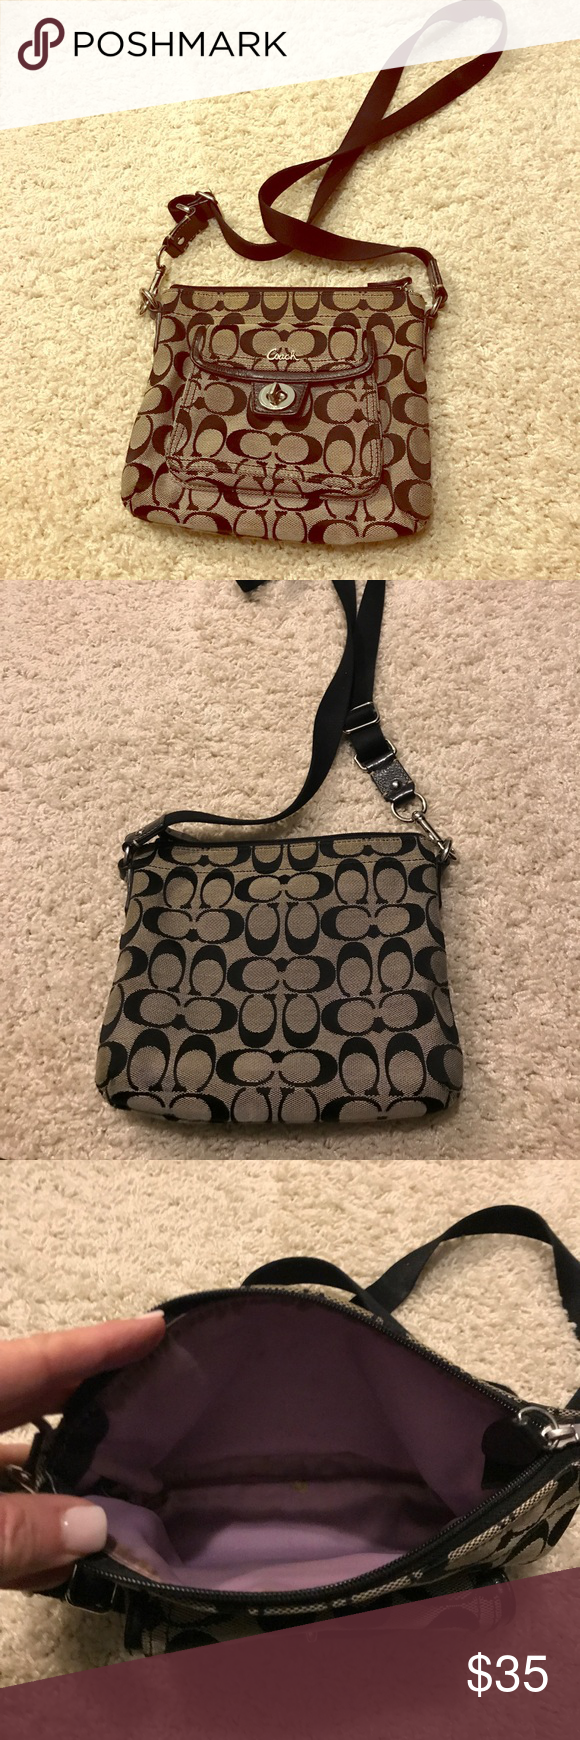 29dc2dc7f8f1 Coach Crossbody Bag Excellent Condition. Coach Fabric with Black ...